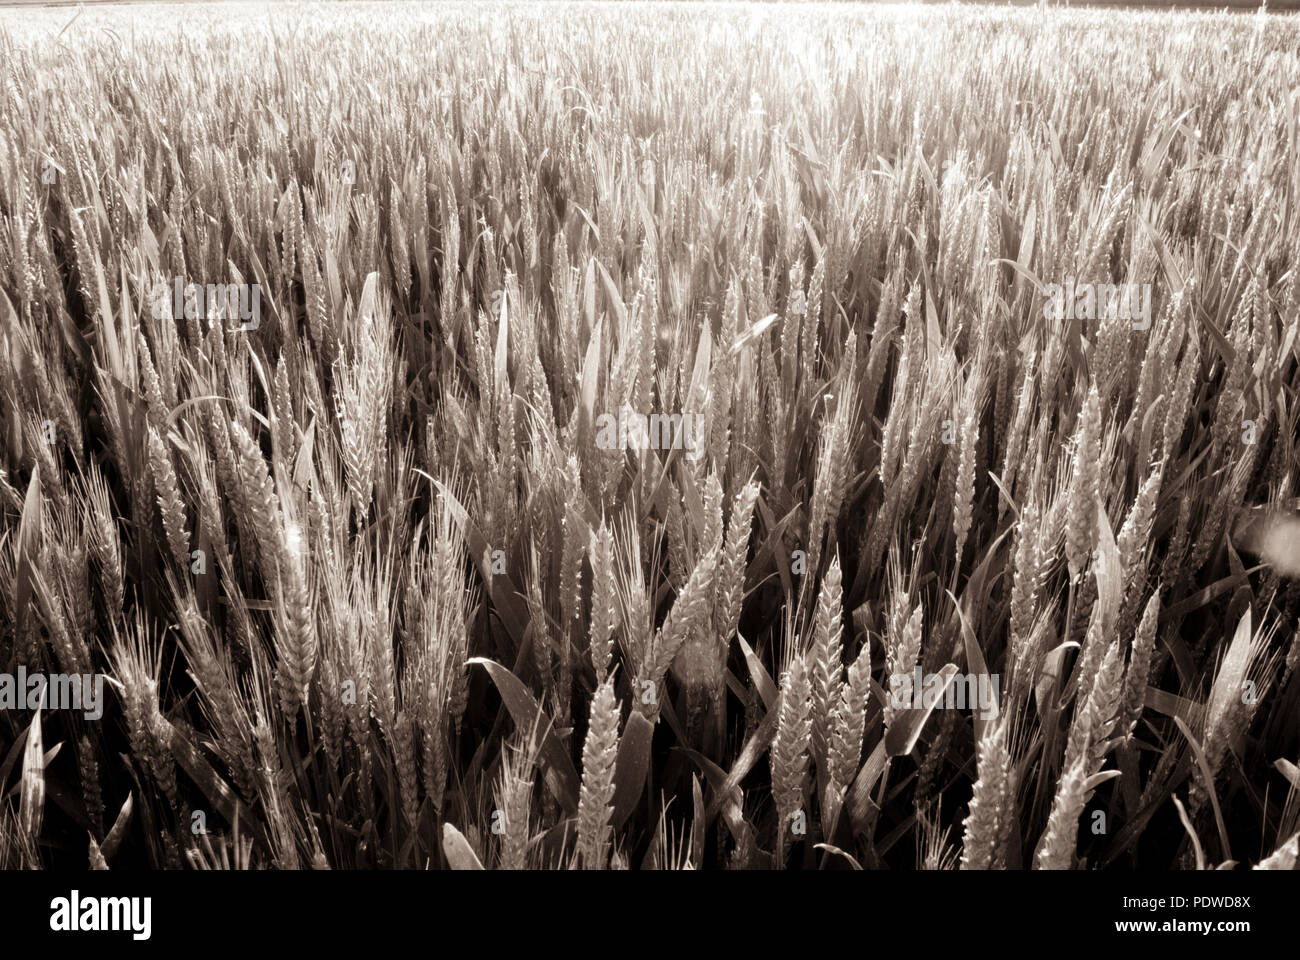 in the middle of the grain field. sepia tones Stock Photo